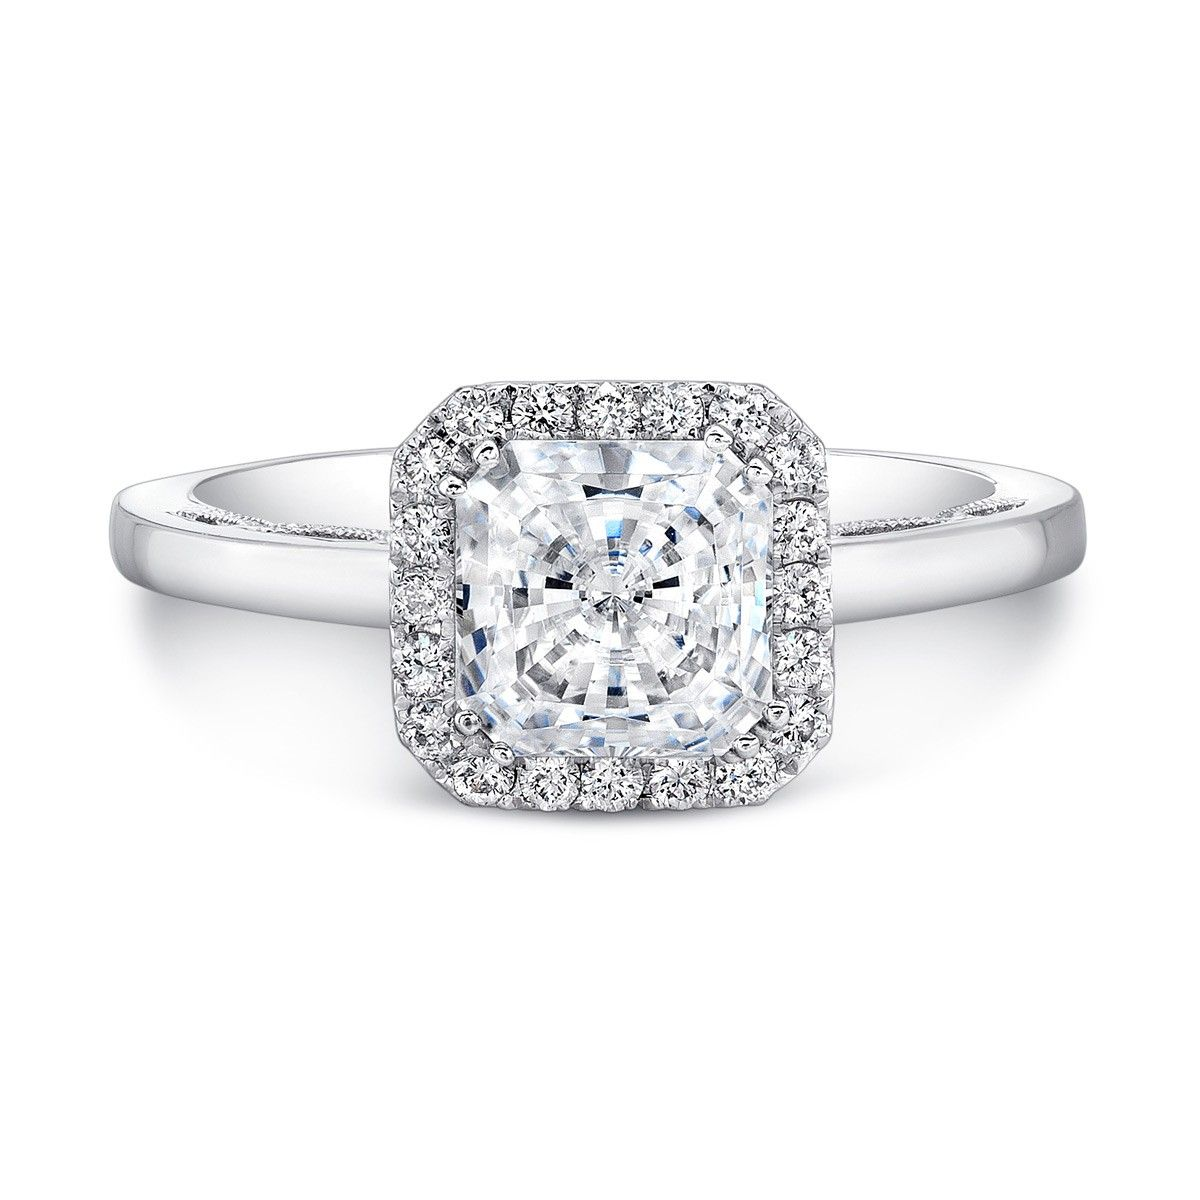 Forevermark Forevermark Princess Halo Engagement Ring My Day came